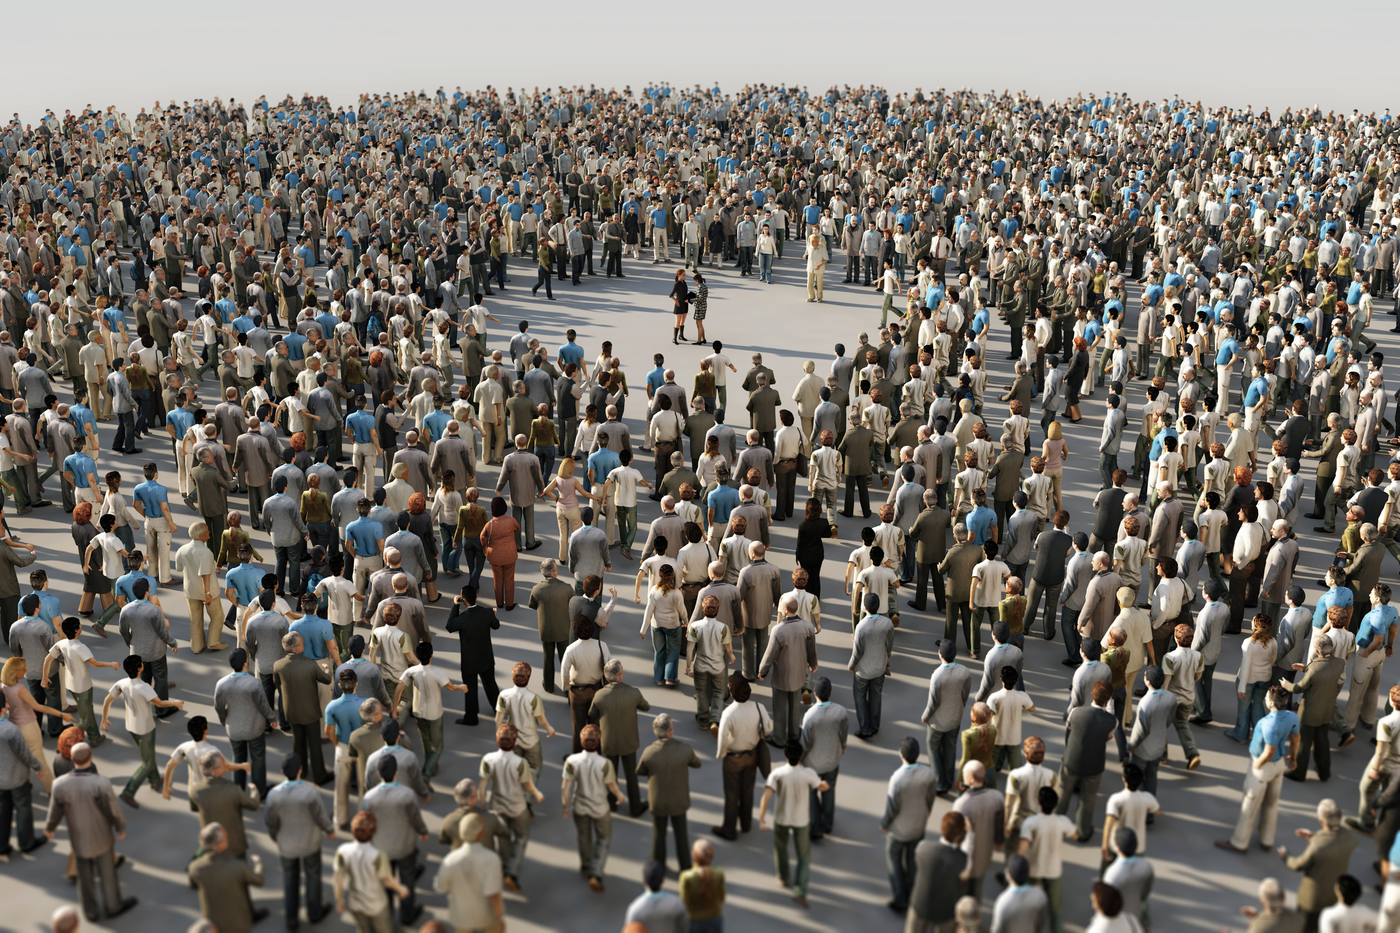 people alone in a crowd